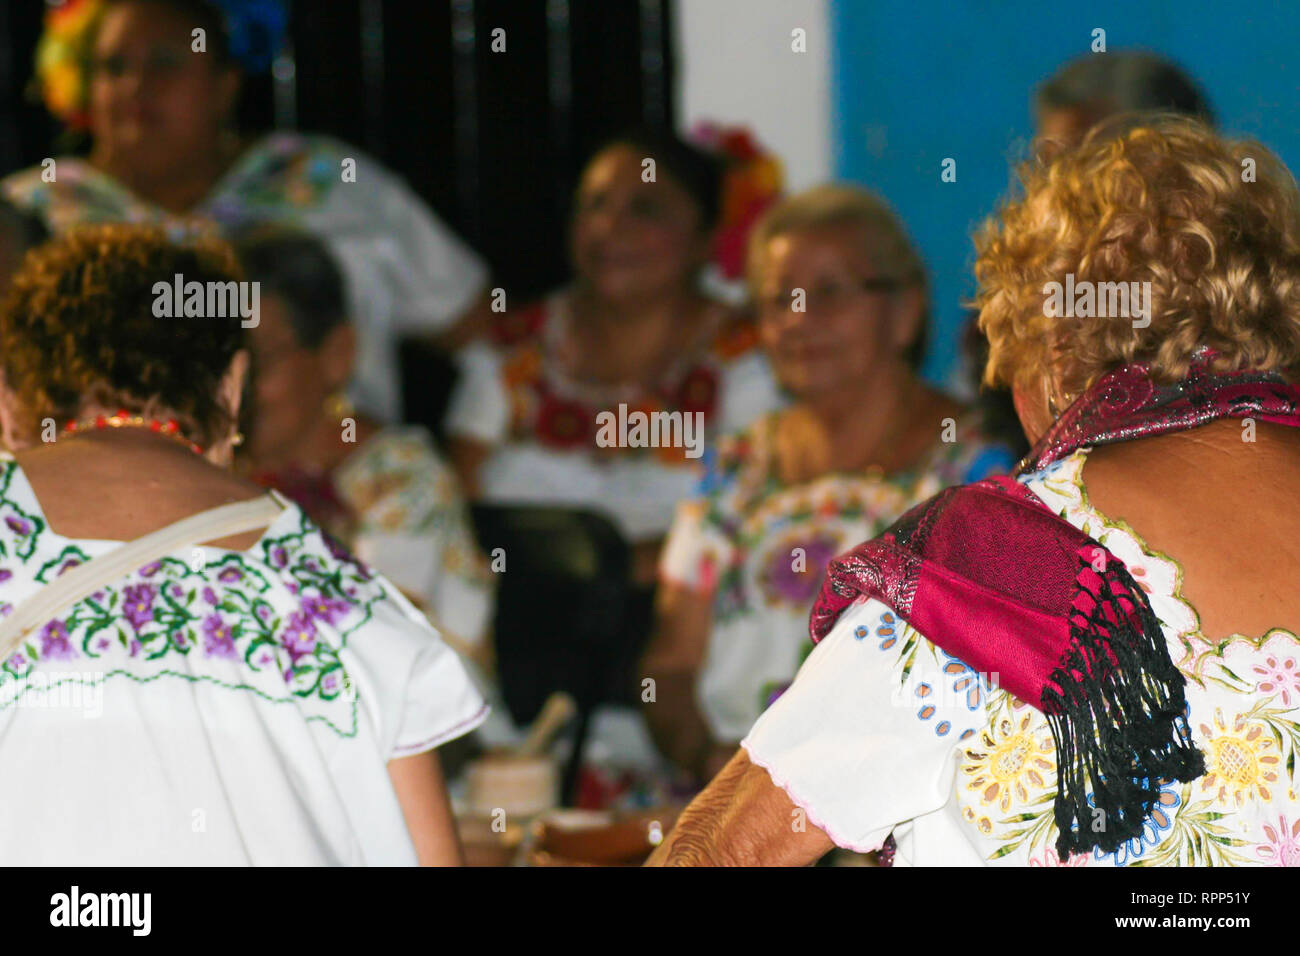 Elderly women wearing colorful traditional costumes during the day of the dead annual celebration in Merida, Yucatan, Mexico - 31.10.2018 - Stock Image